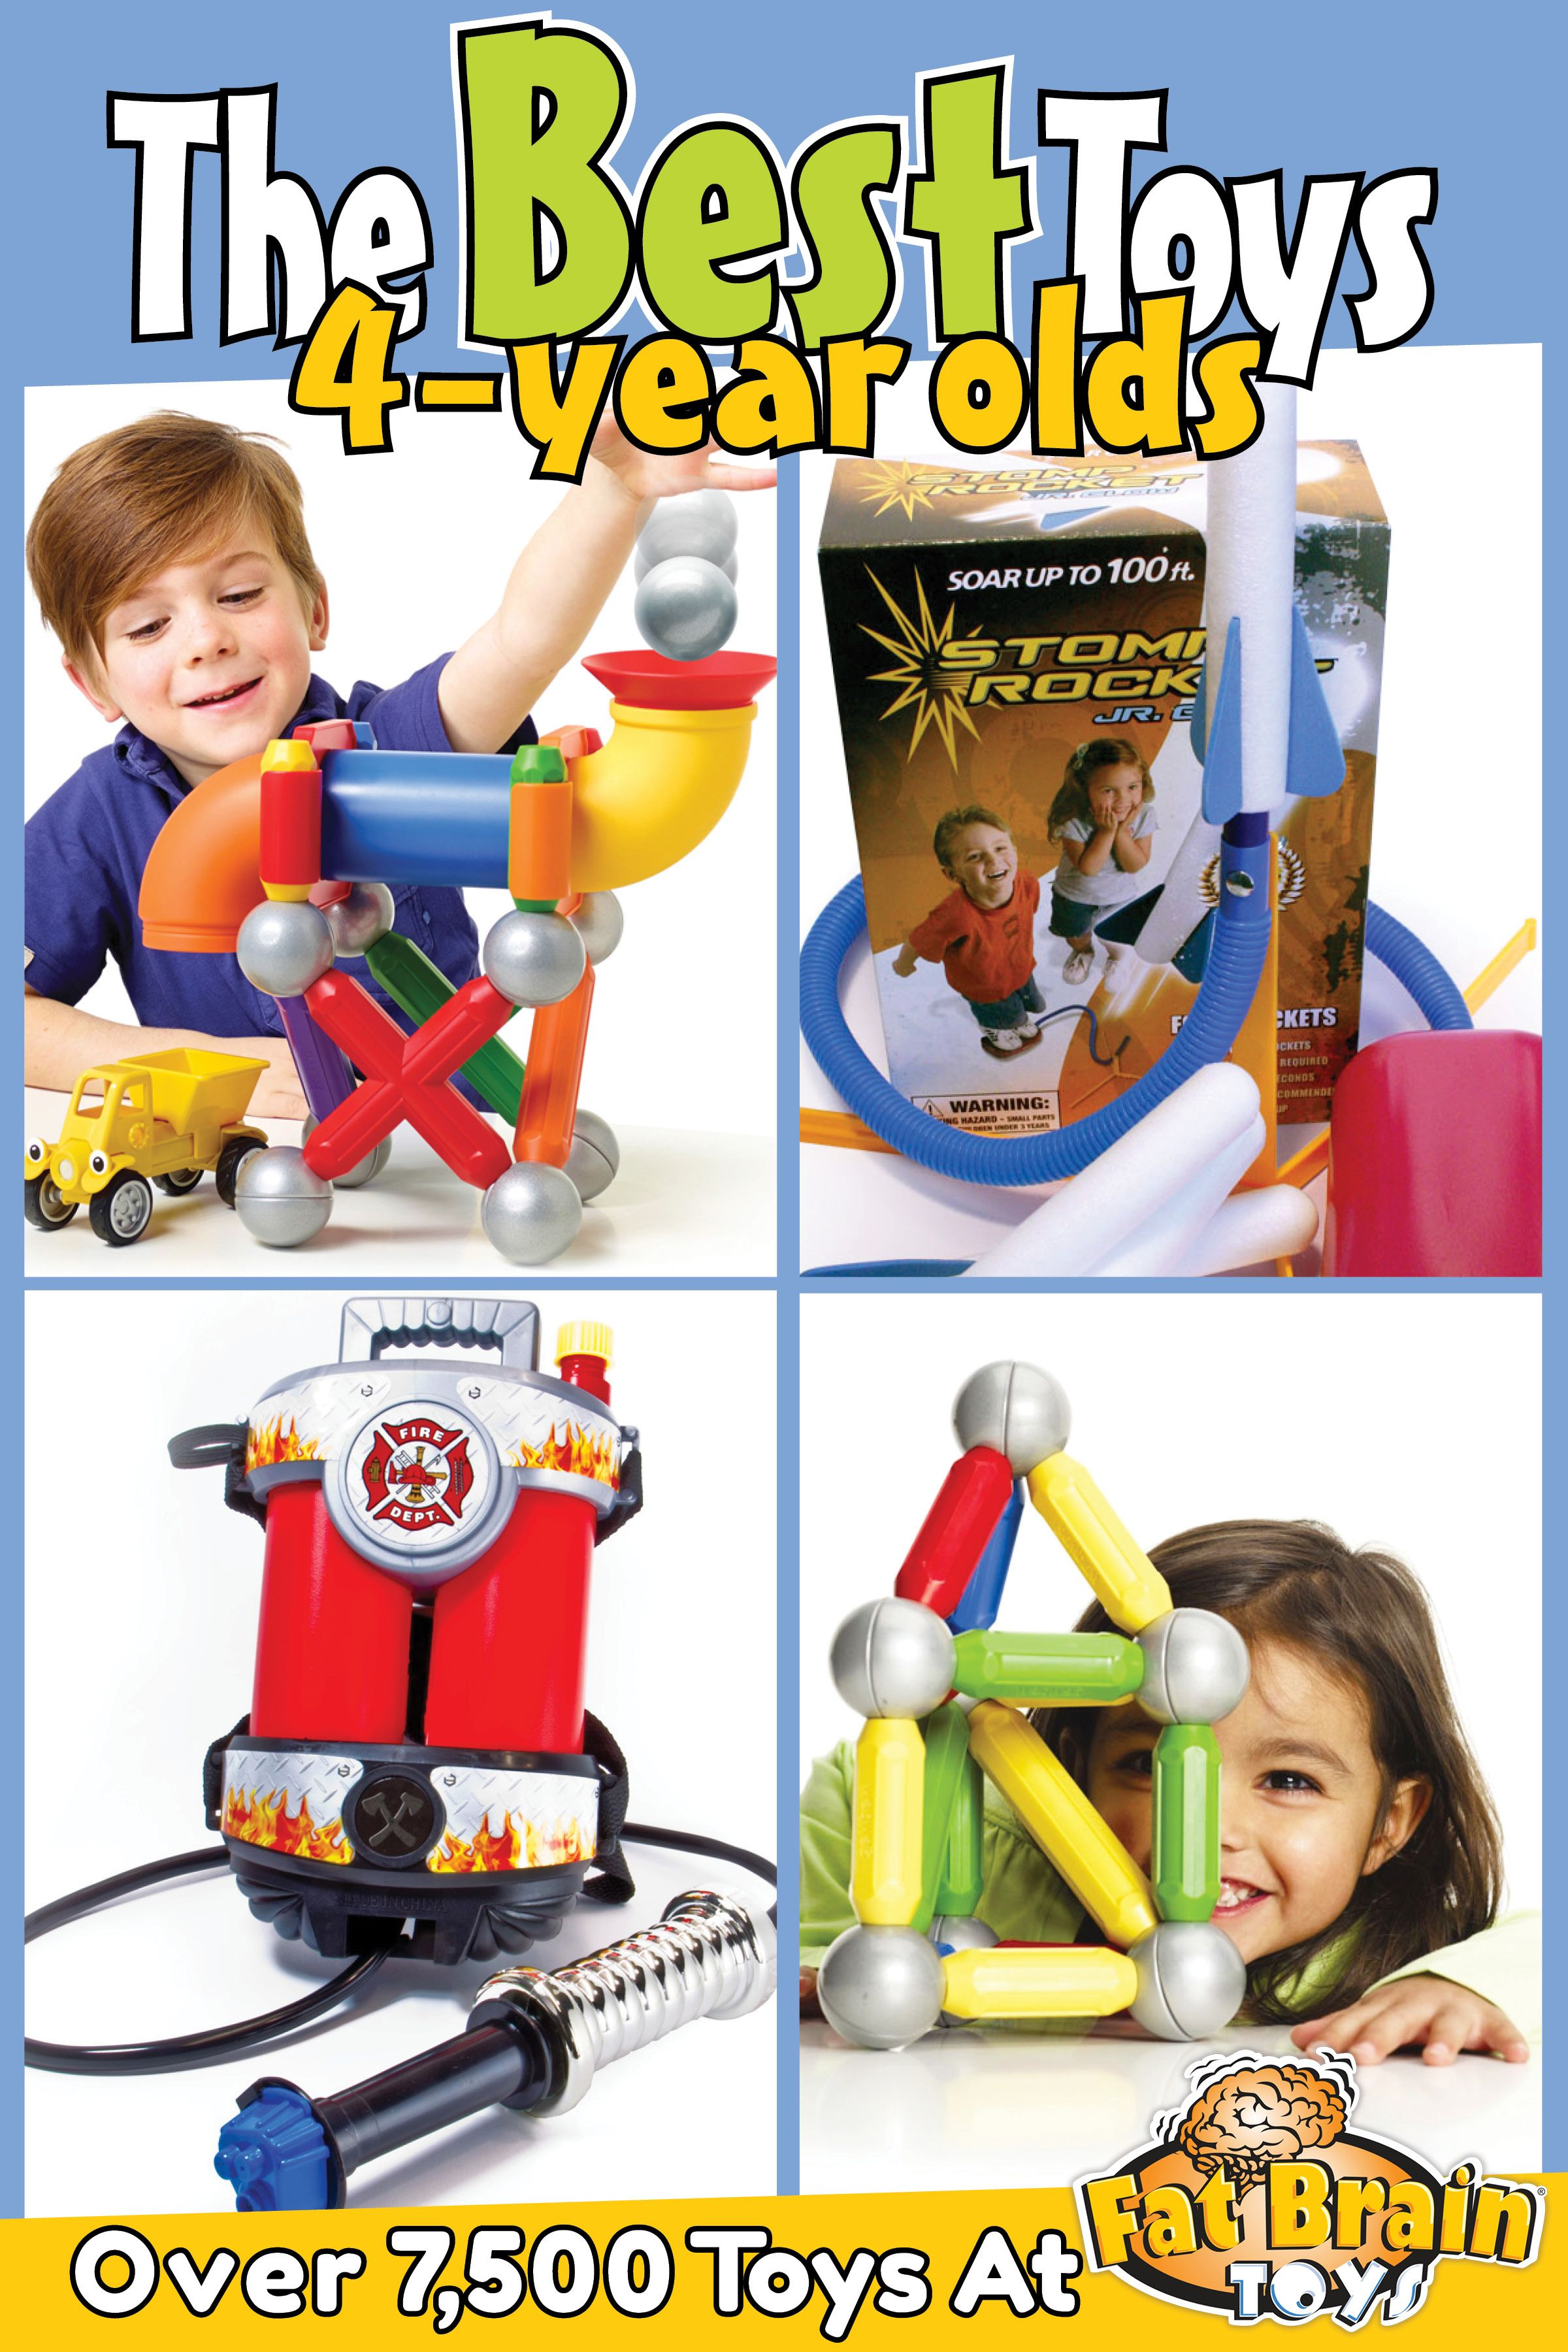 The Best Toys Games And Ts On The Planet For 4 Year Olds